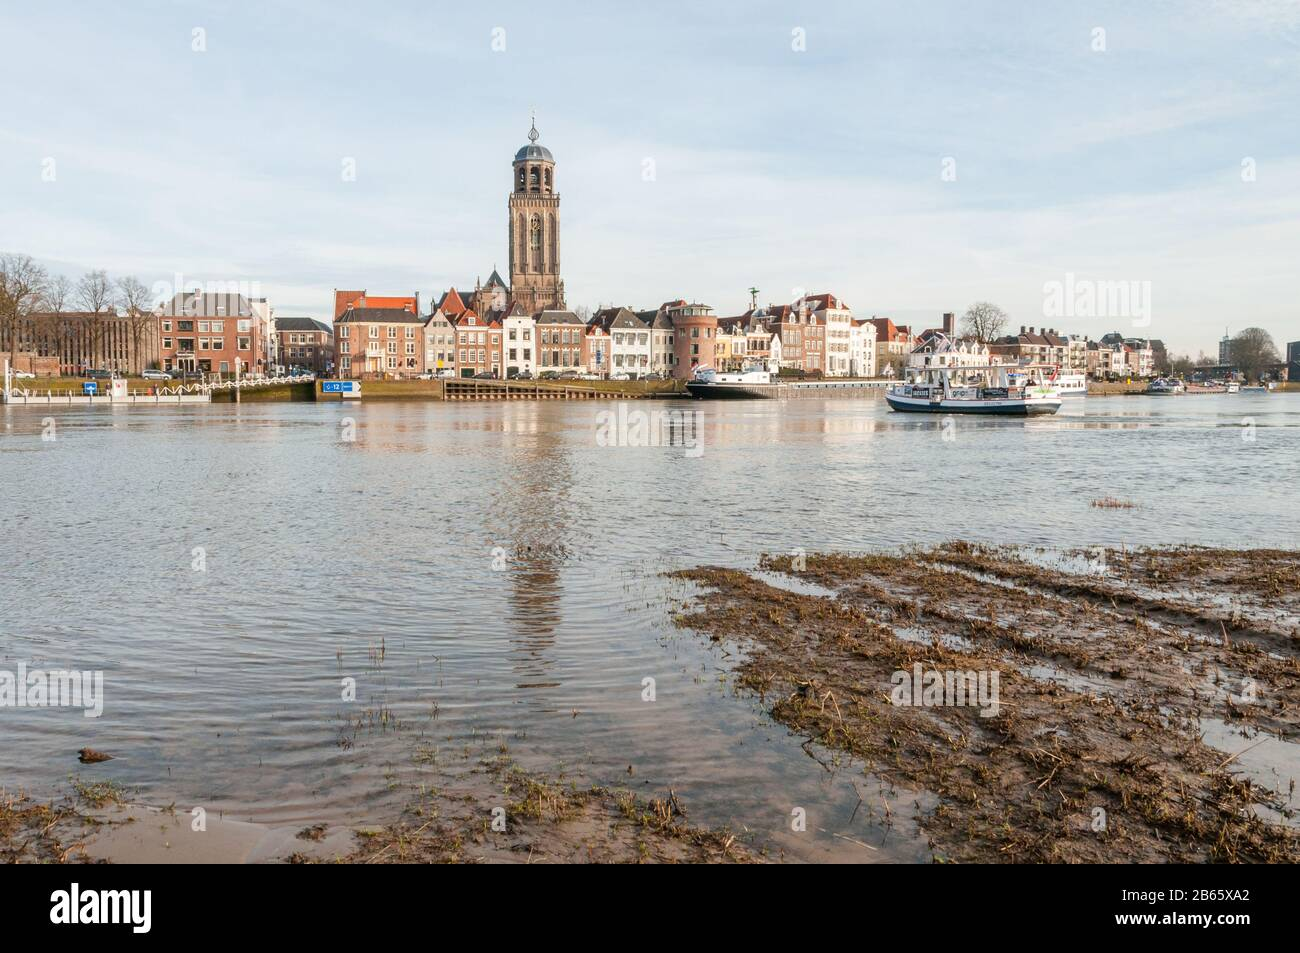 DEVENTER, THE NETHERLANDS - JANUARY 18, 2014: The historic center of Deventer with the Lebuinus Church and the river IJssel in the foreground. The fer Stock Photo